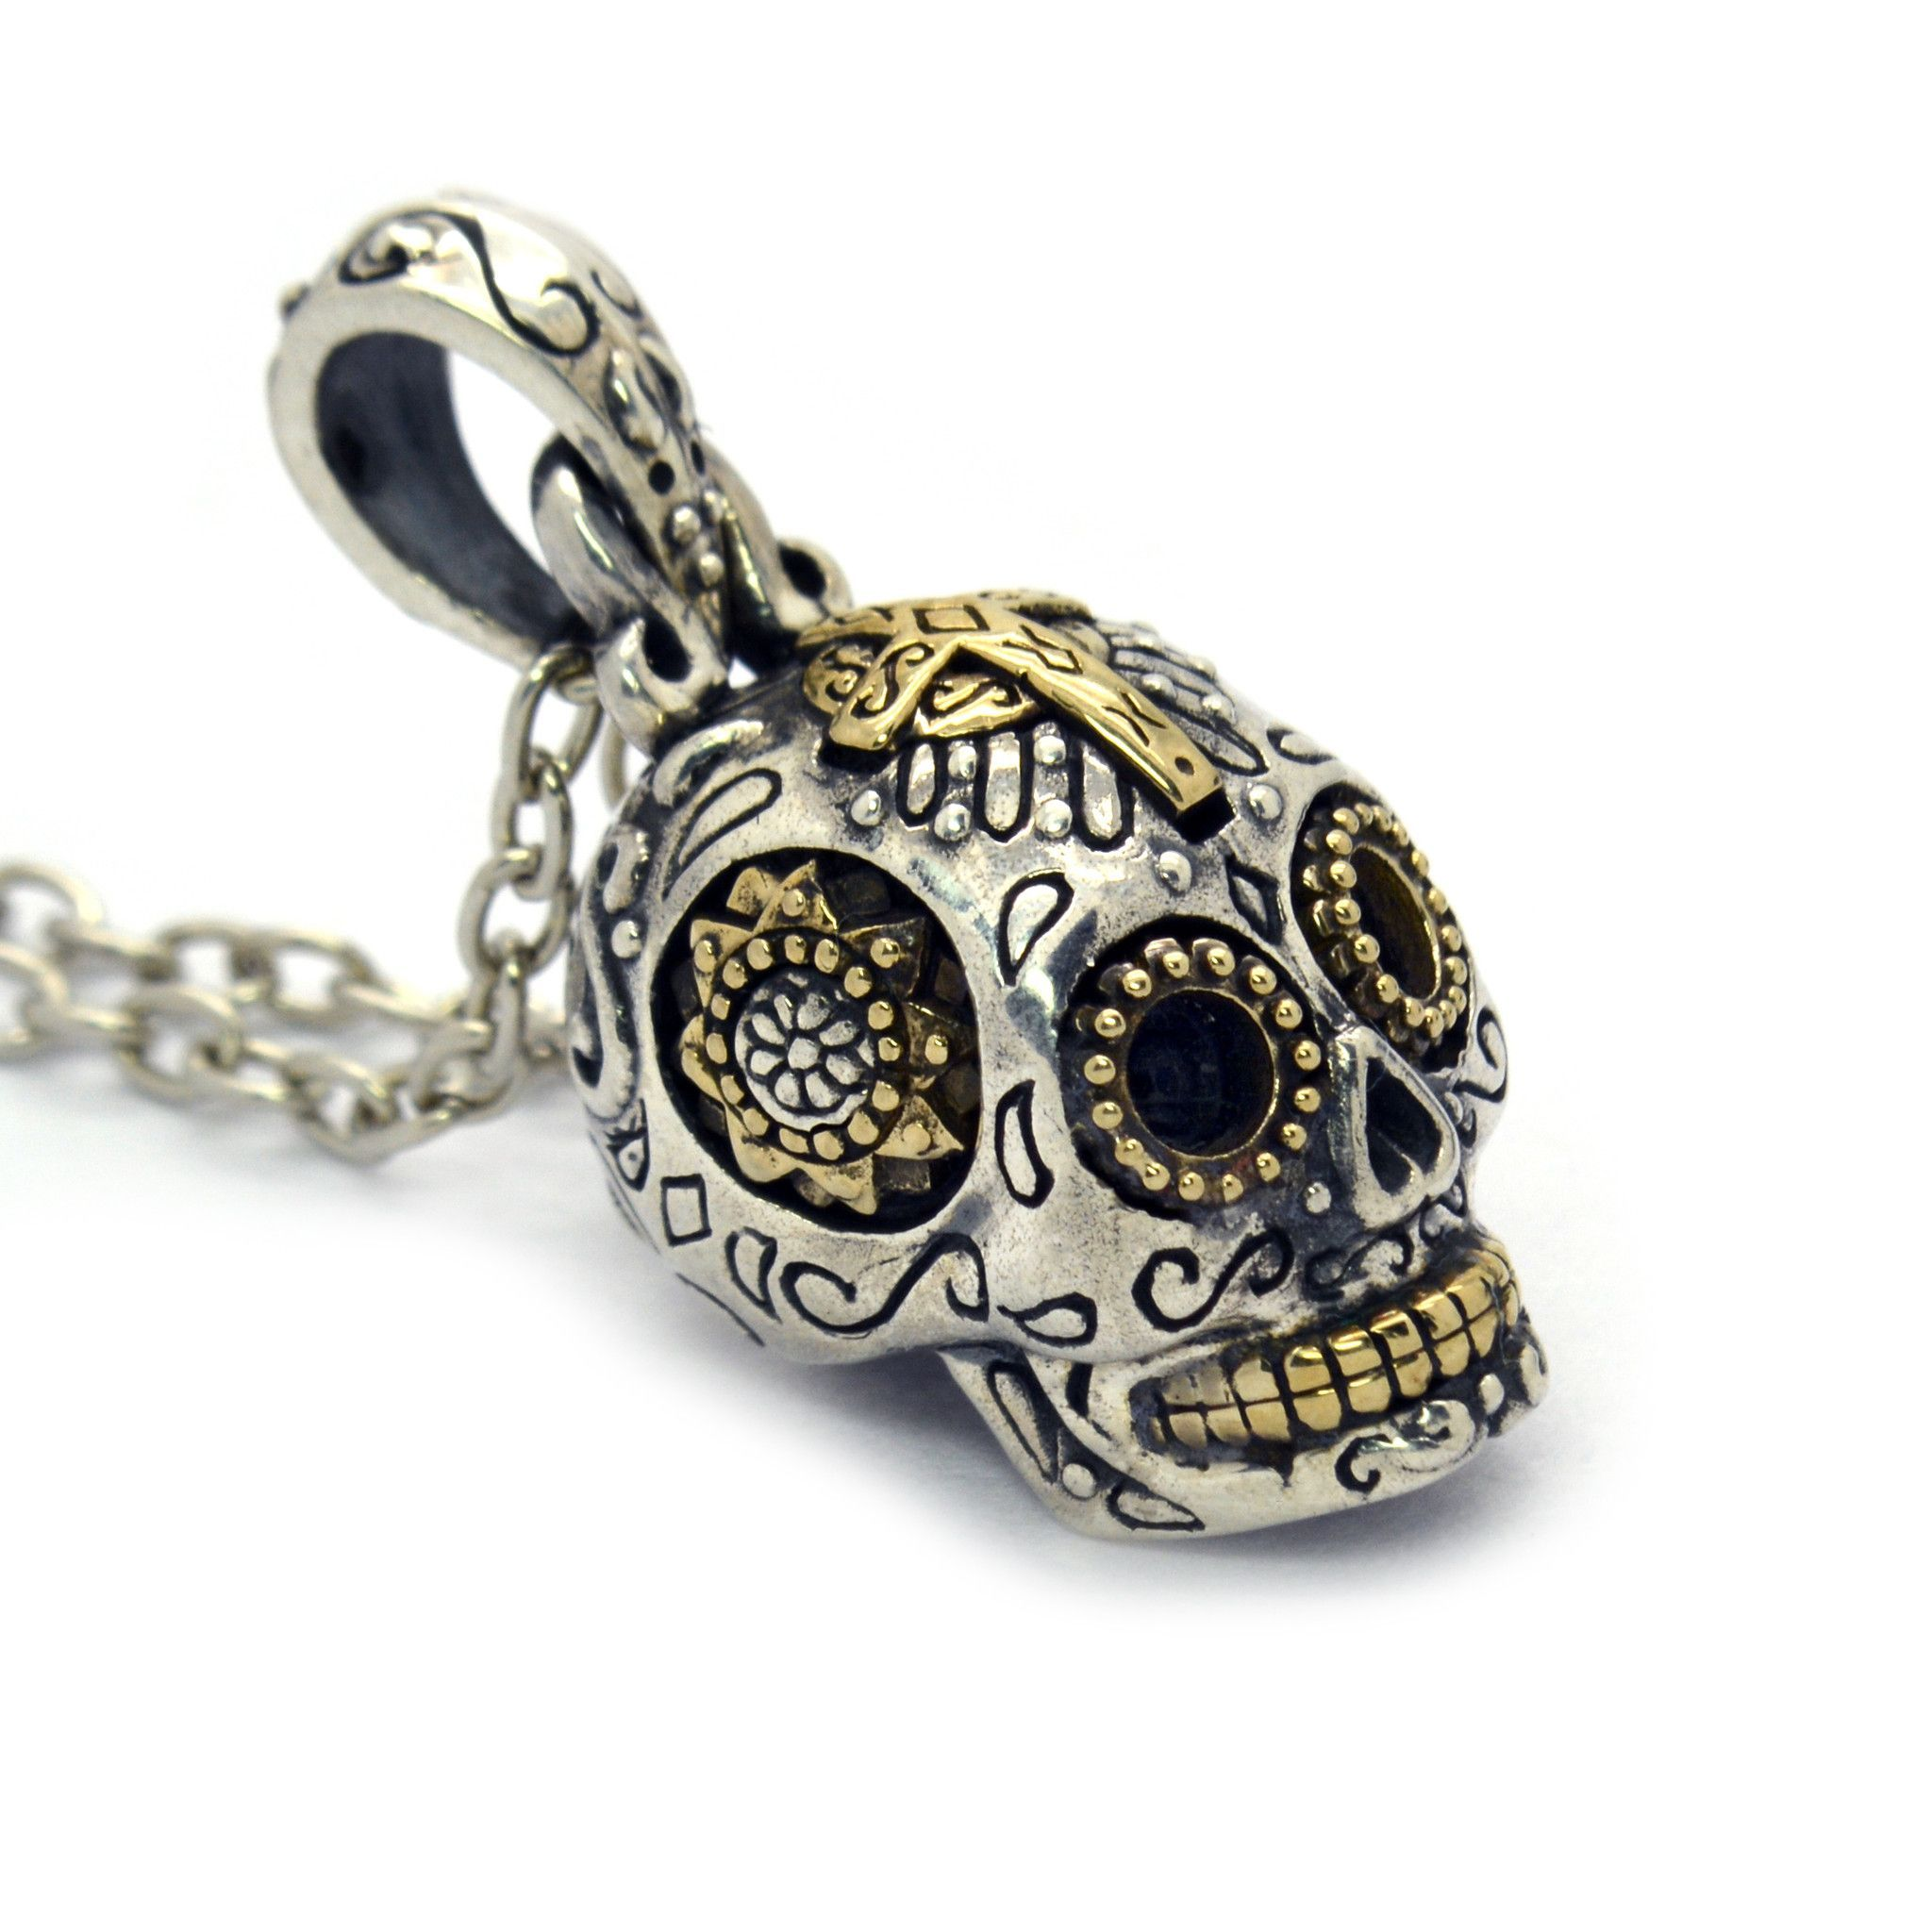 pendant sugar ii rainbow sugarskull yard products dog skull art necklace jewelry